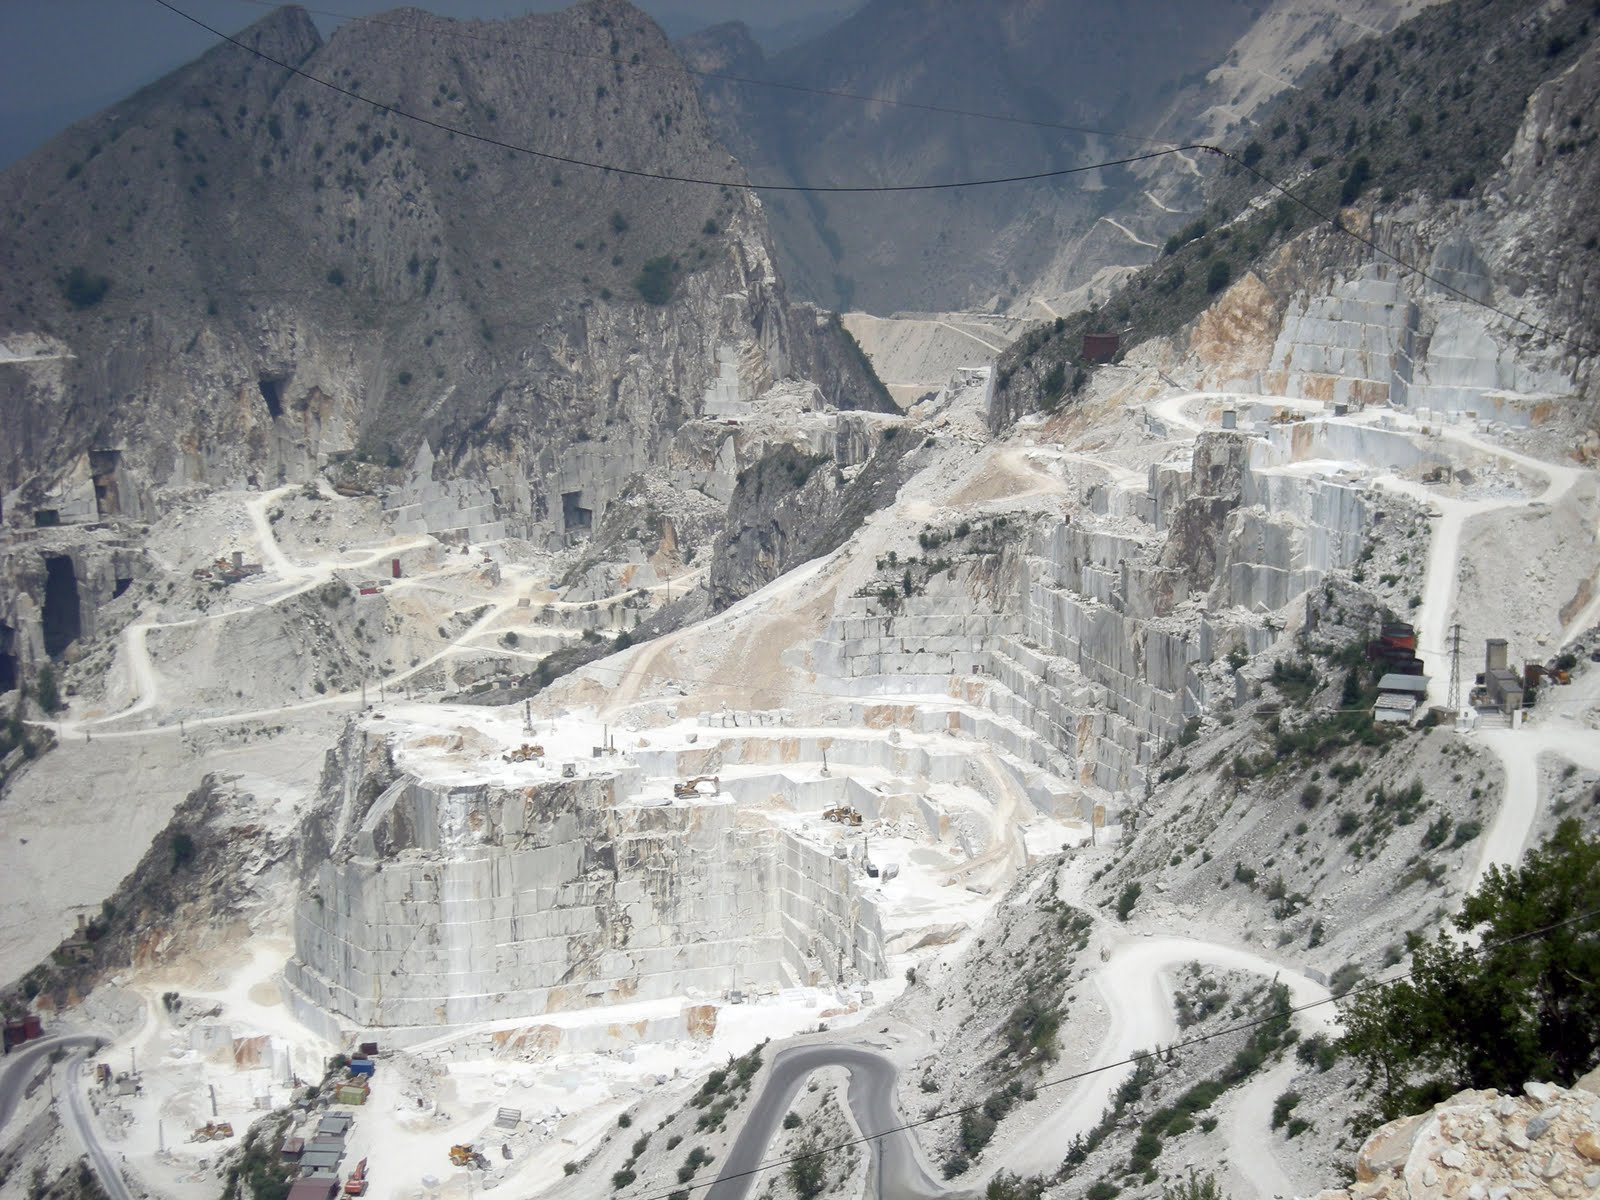 carrara-marble-fron-art-history-to-toothpaste-the-environmental-disaster